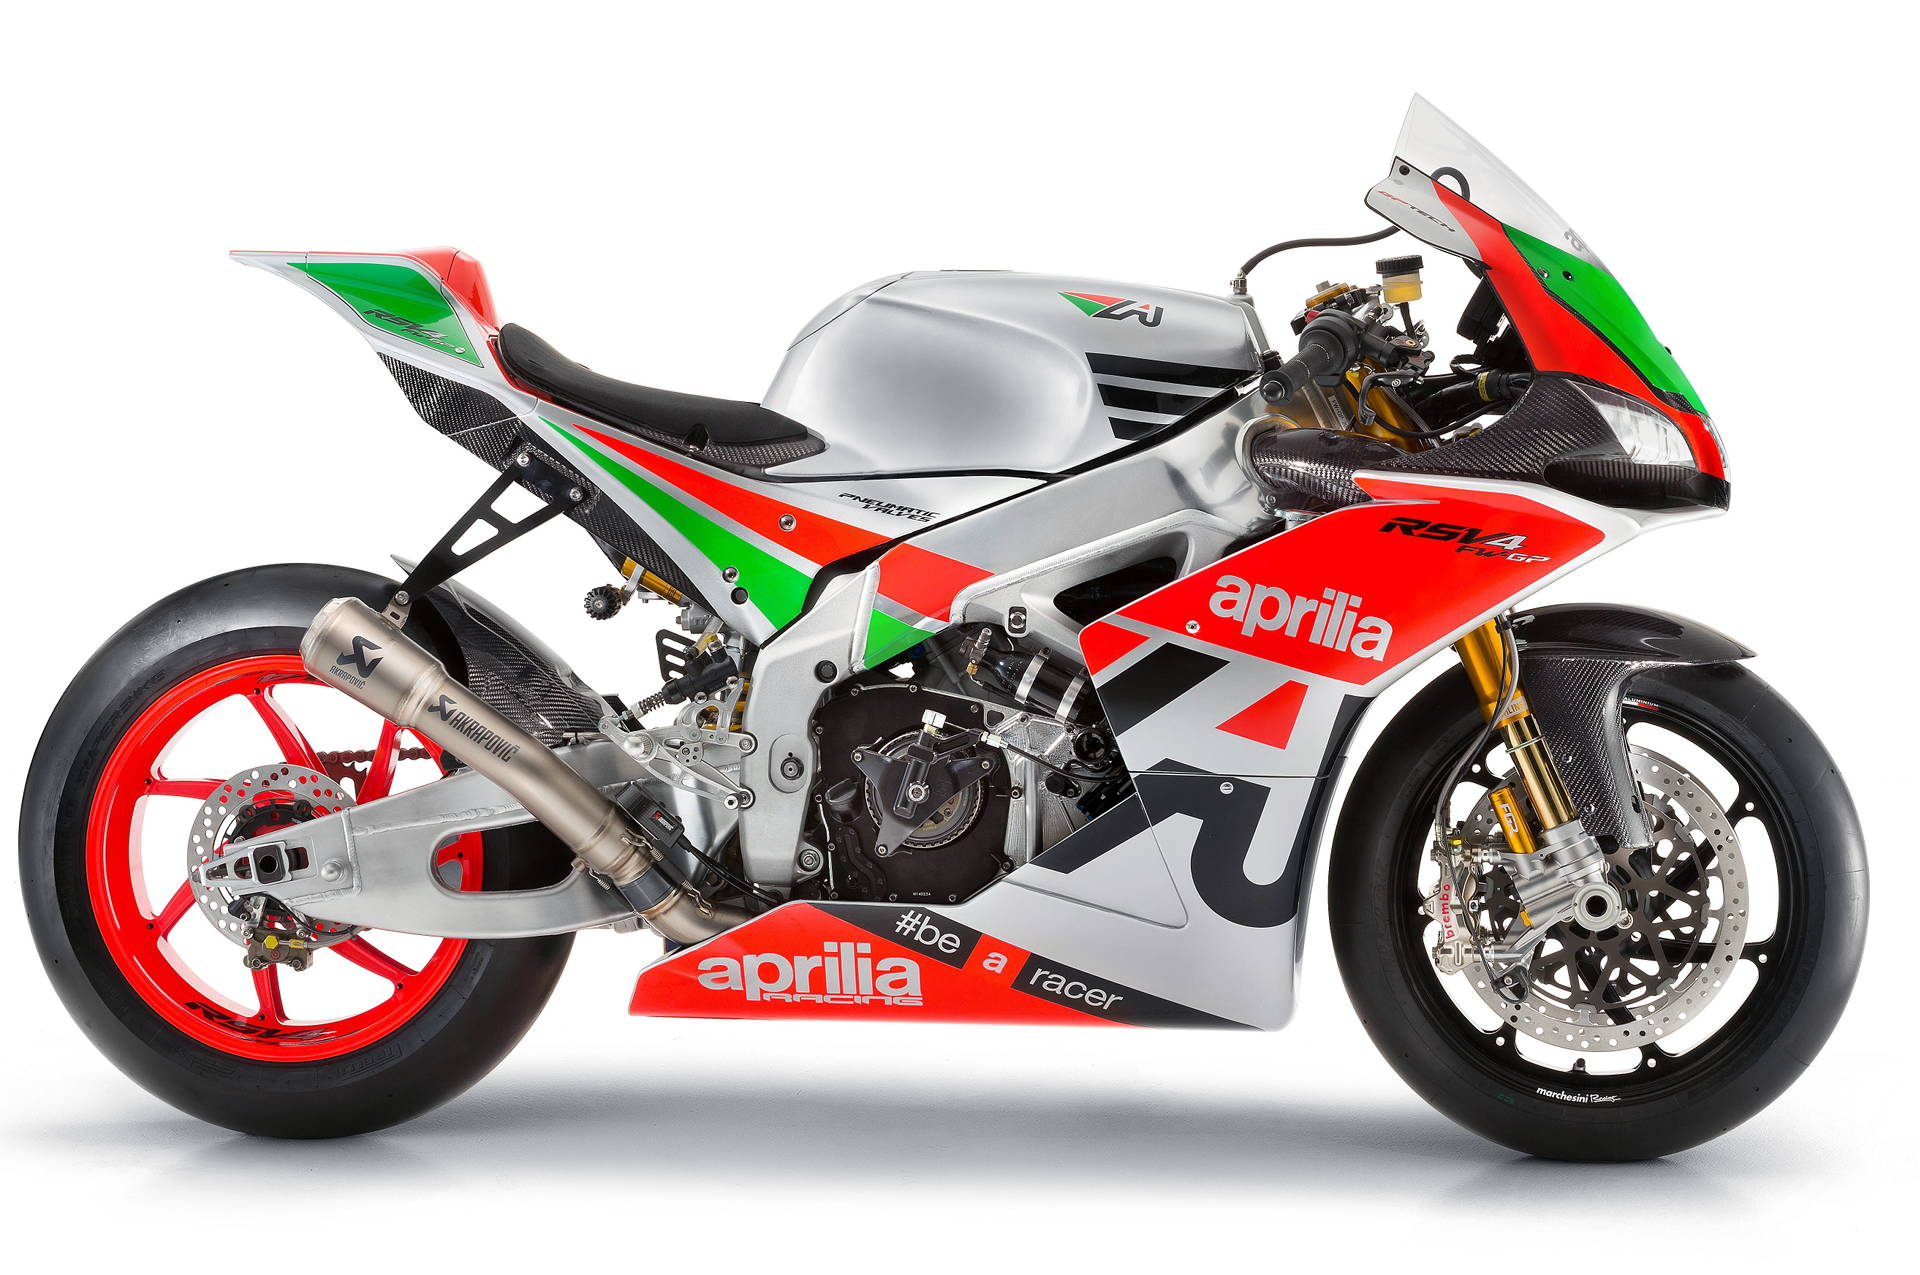 Factory Race Bikes for the Masses: Aprilia Announces Factory Works Project - MotorcycleDaily.com ...